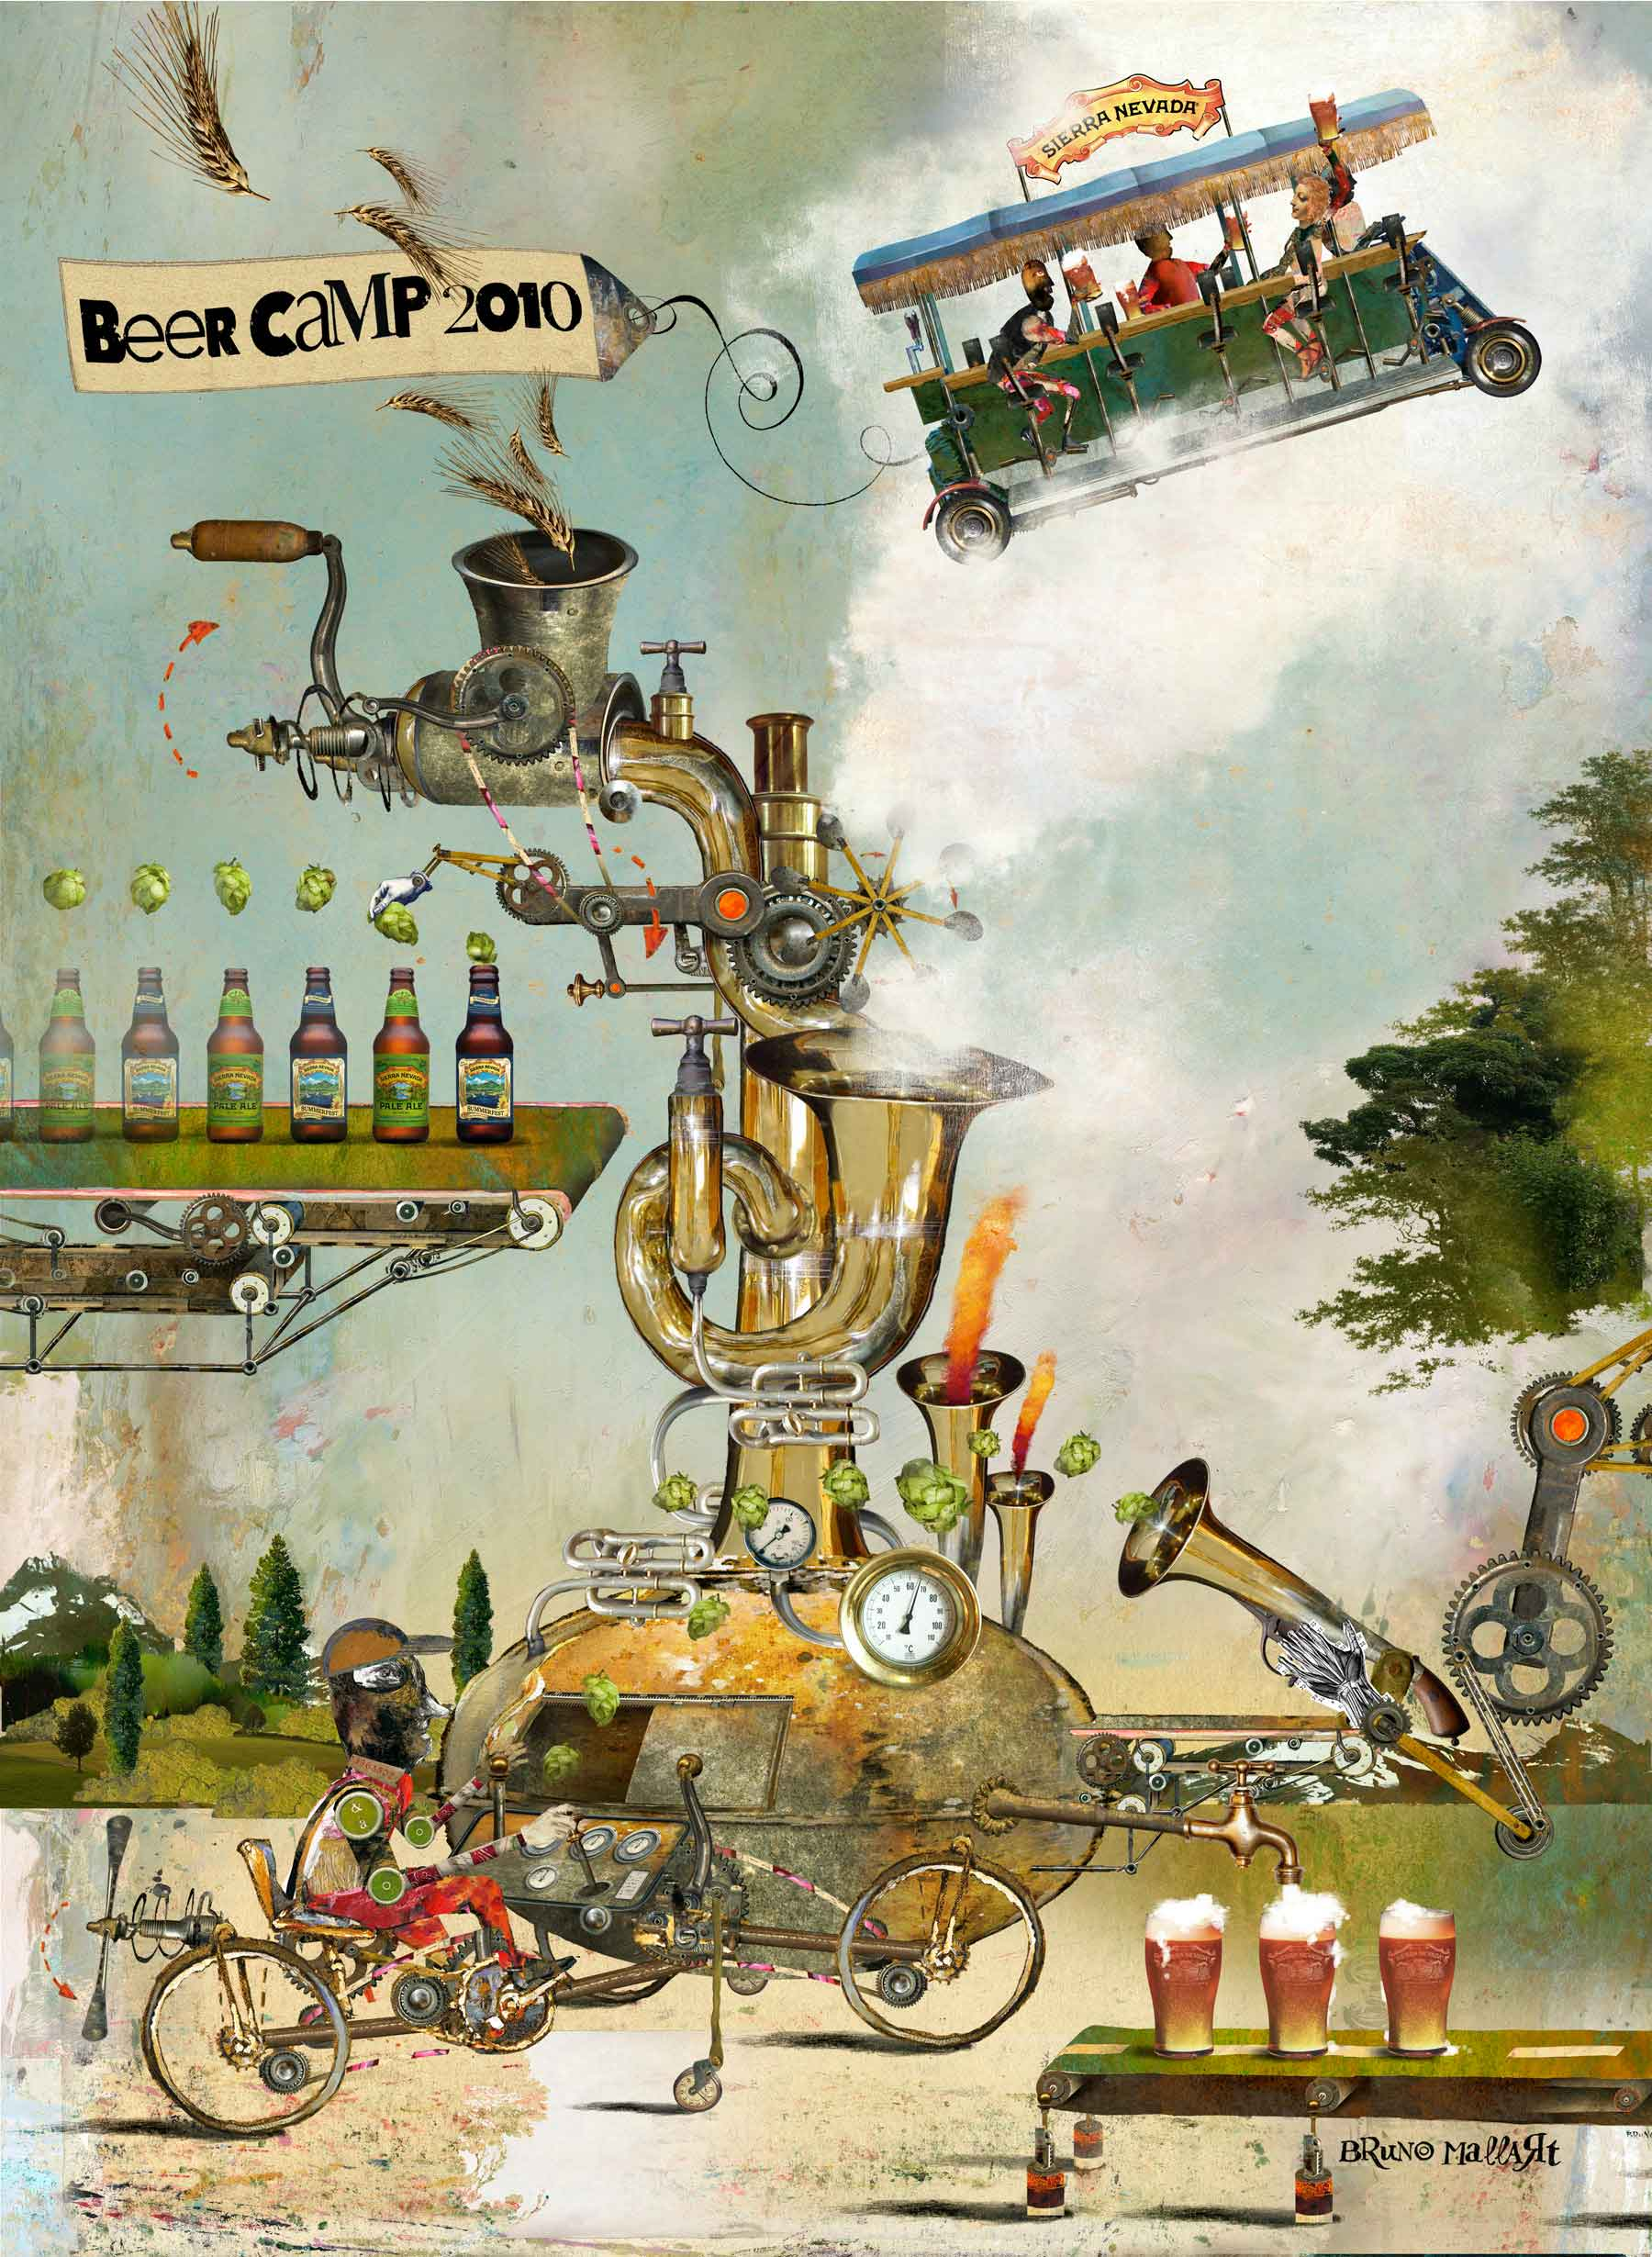 Bruno Mallart / Beer Camp Poster / Sierra Nevada Brewery